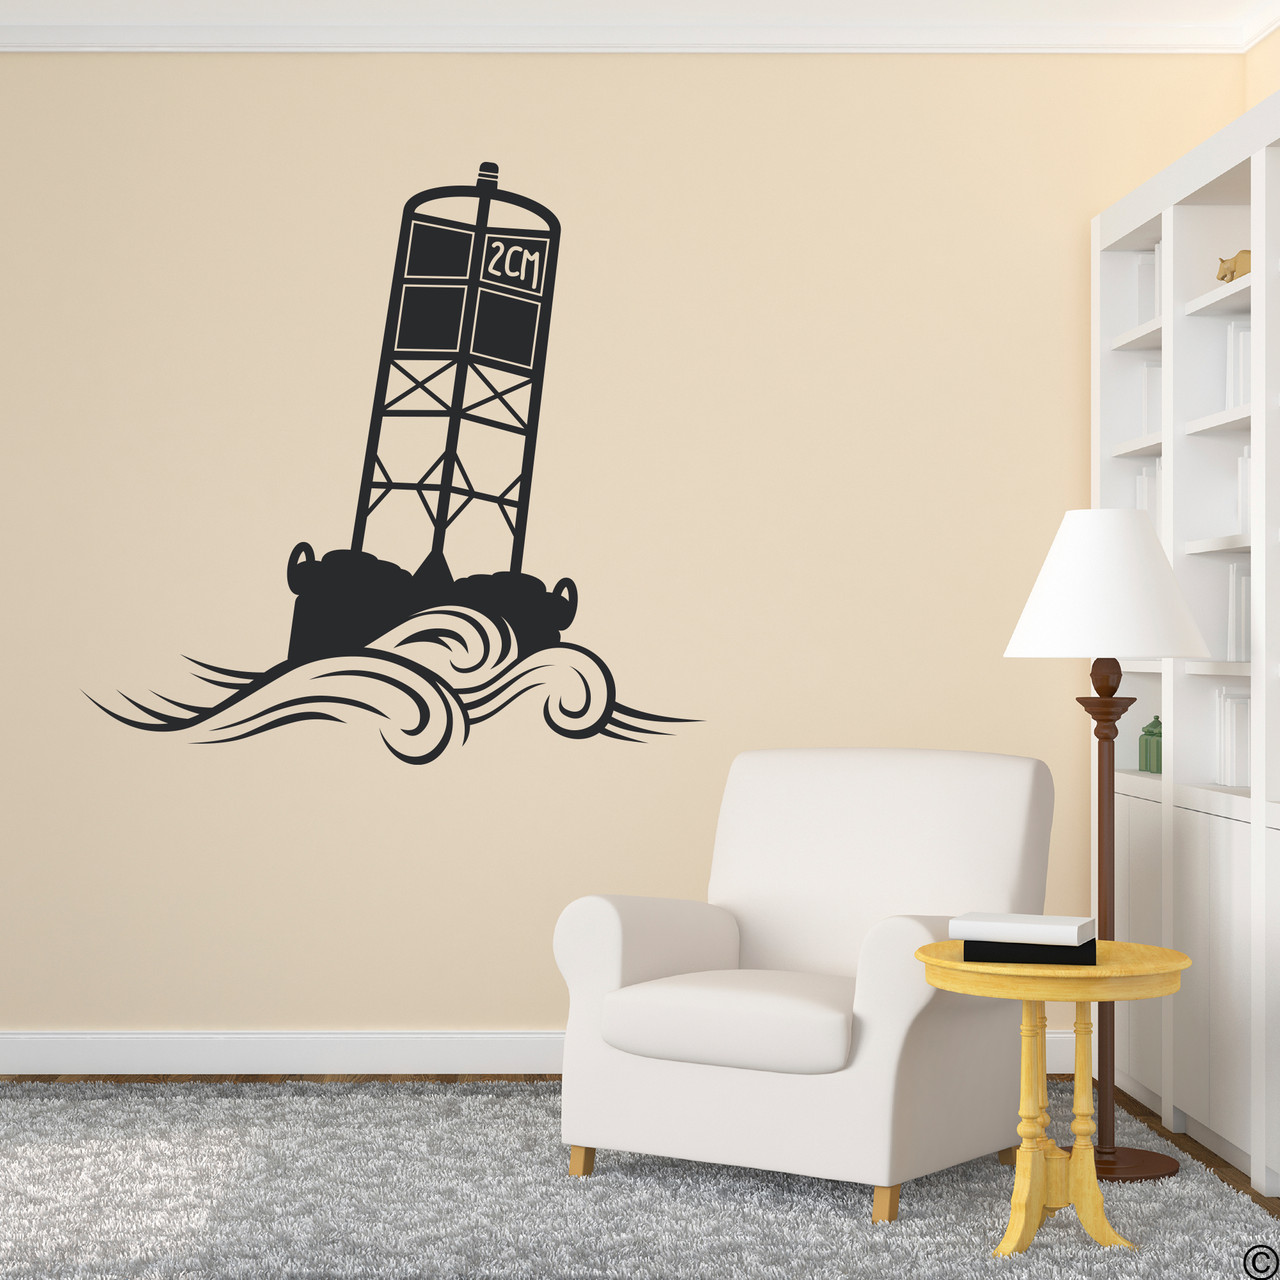 The Cape May Harbor 2CM Buoy wall decal in black.